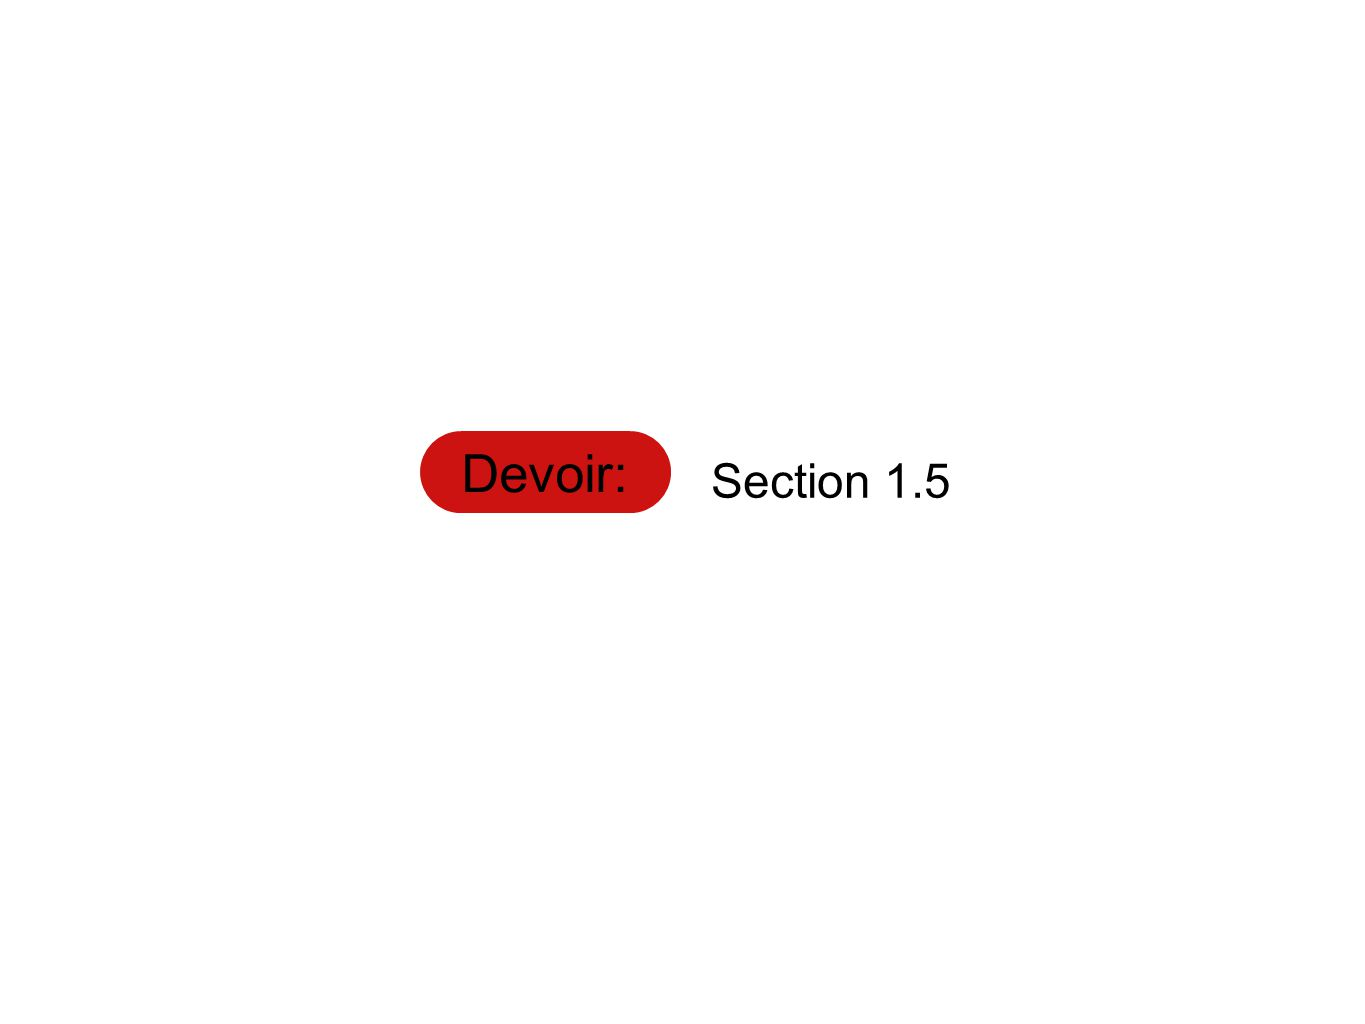 Devoir: Section 1.5